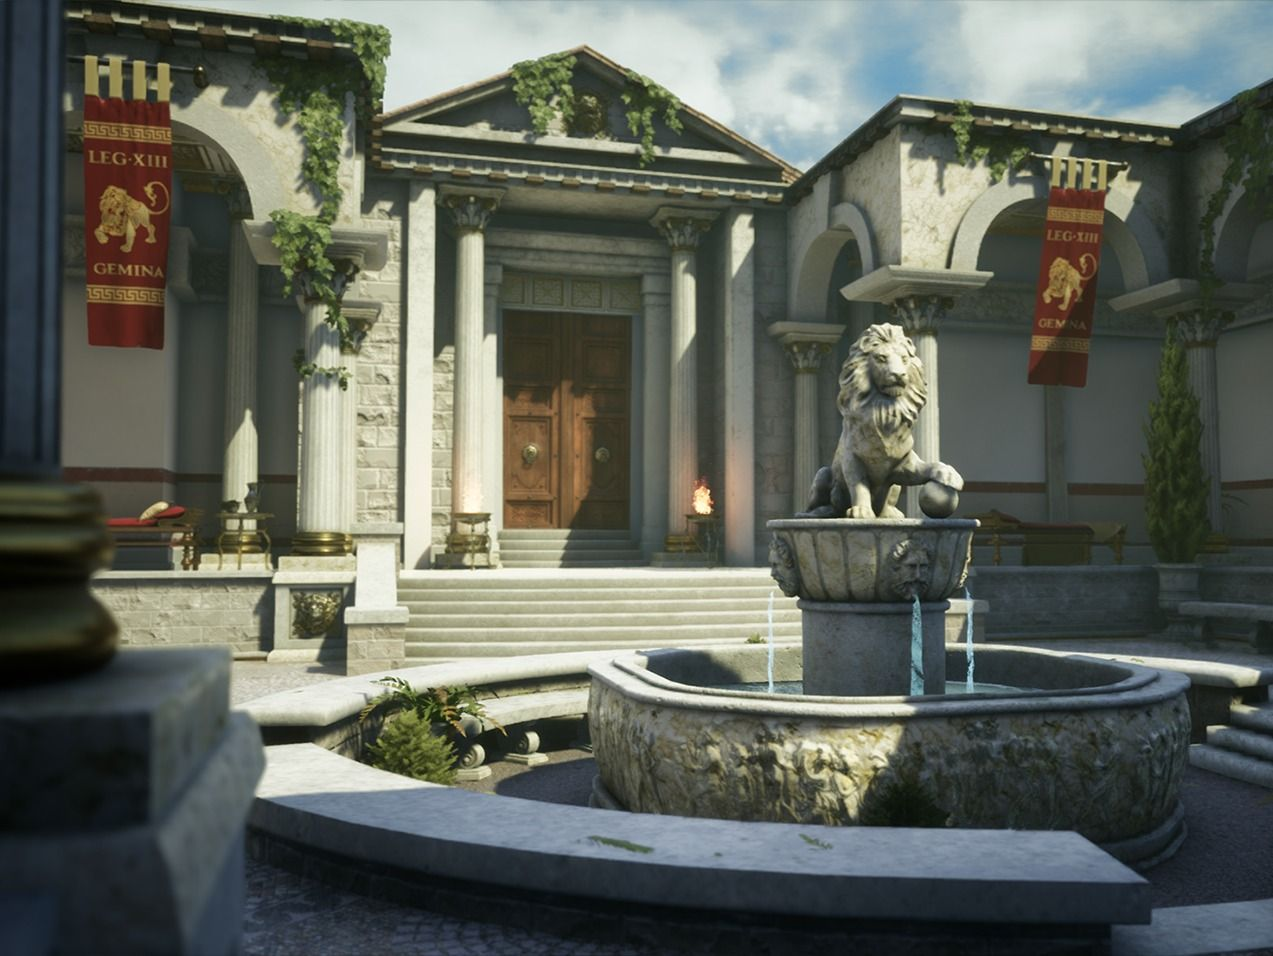 The Lion's Courtyard